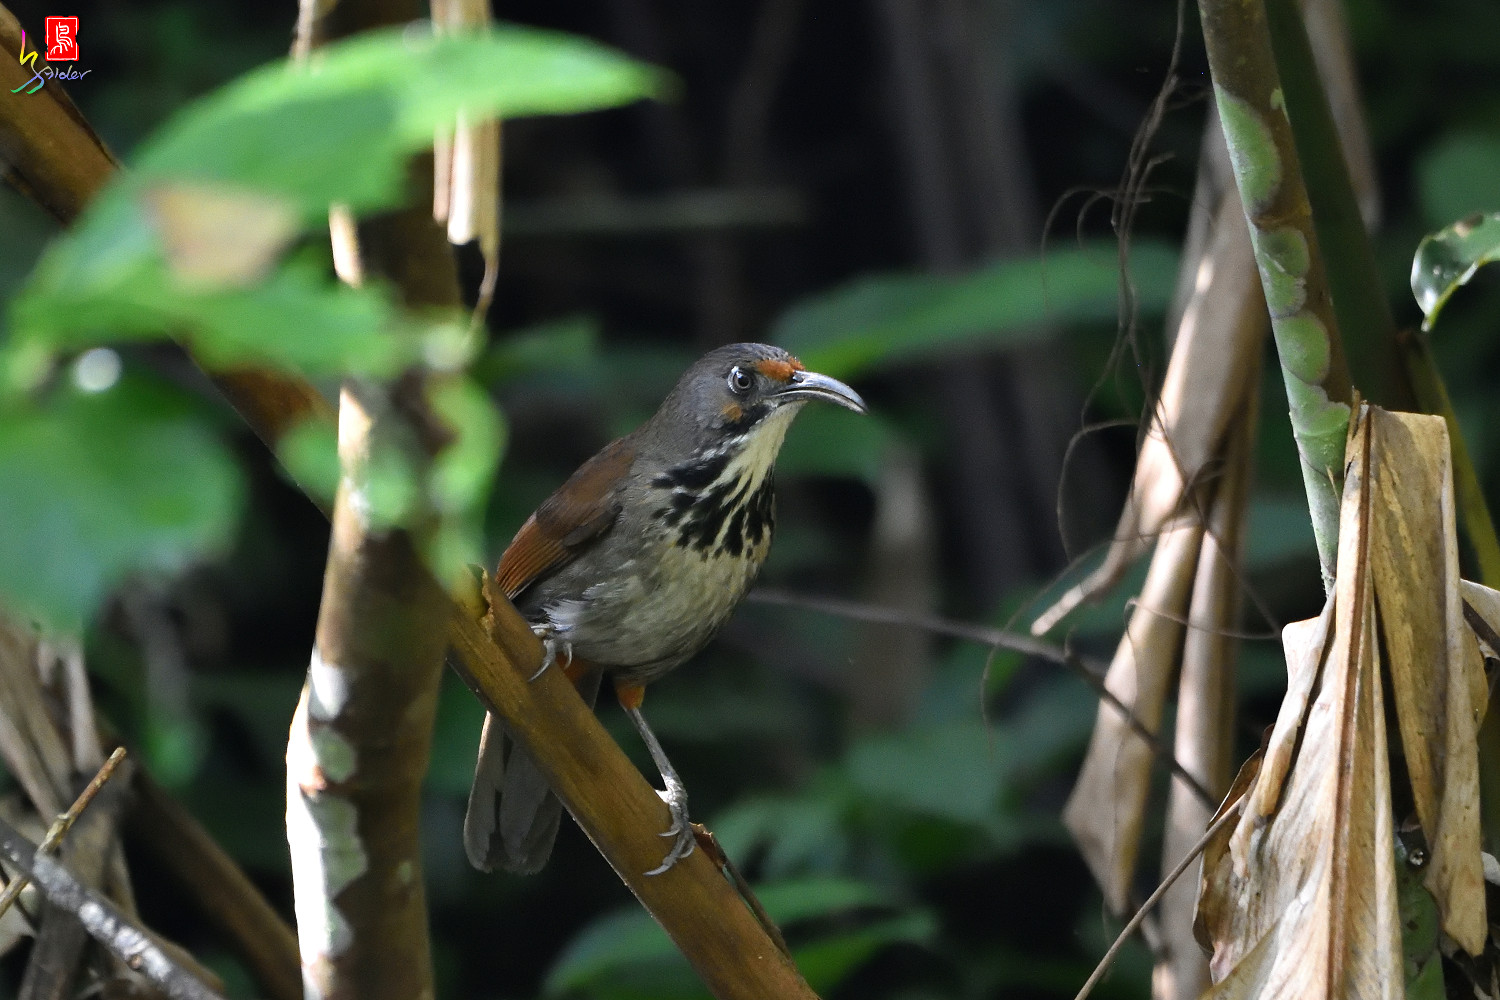 Rusty-cheeked_Scimitar_Babbler_0500